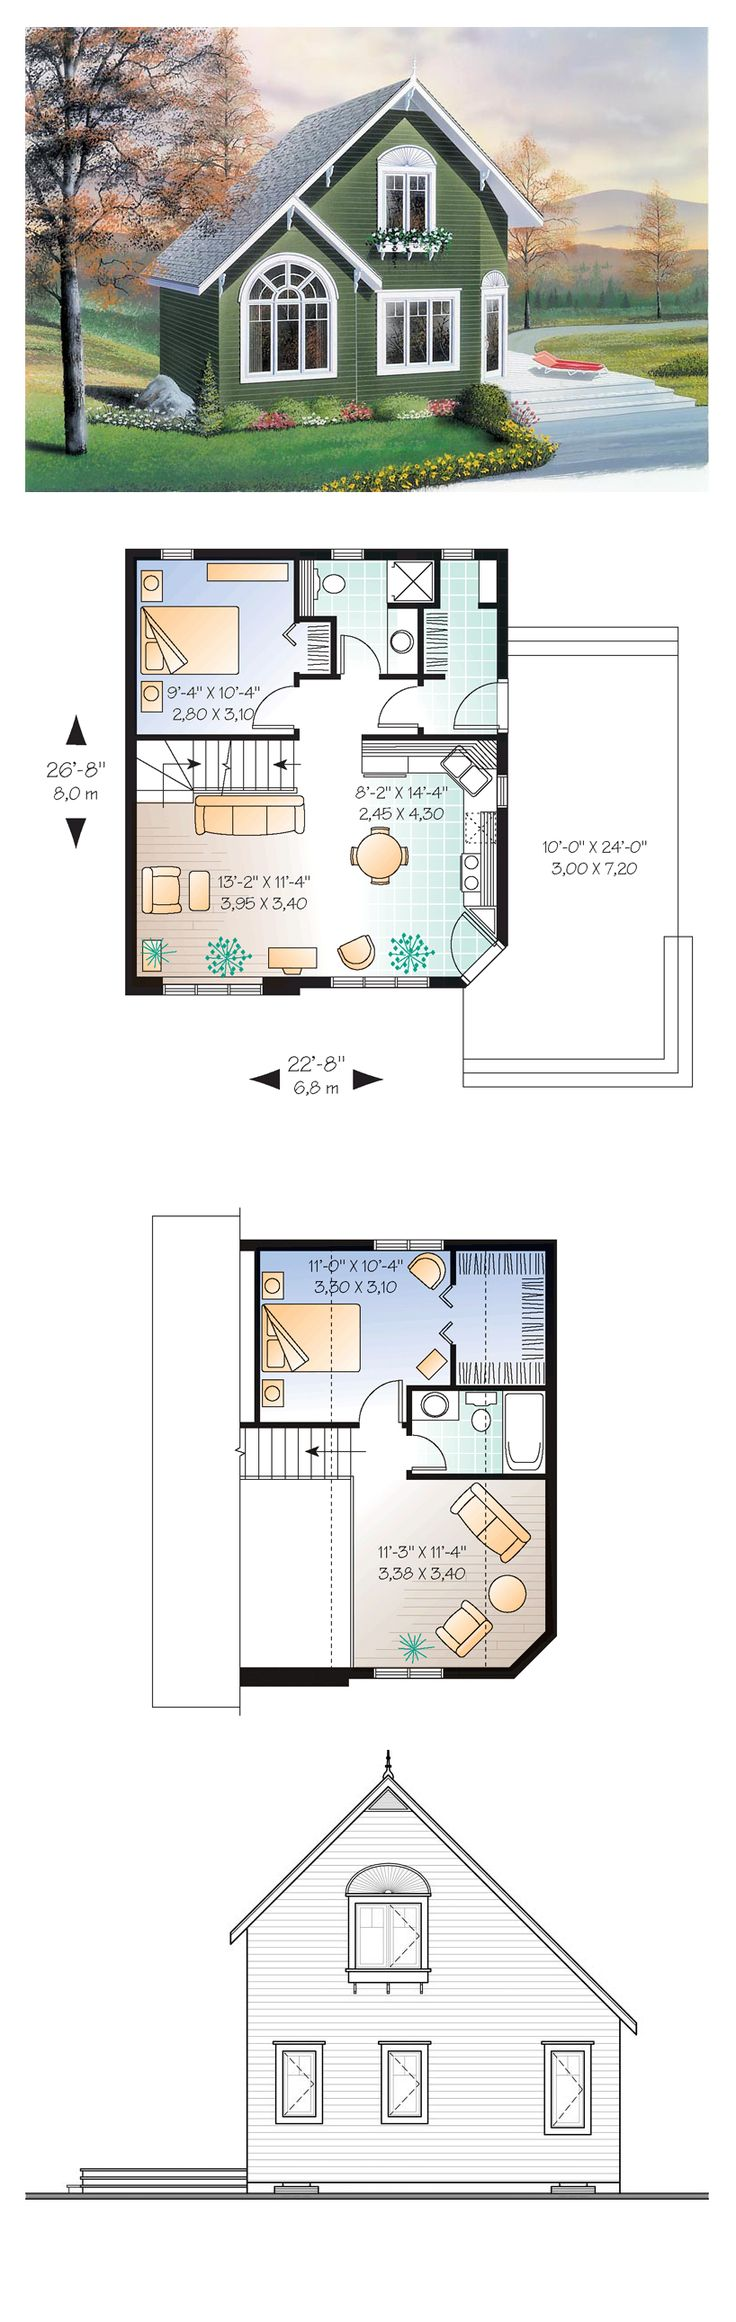 best 25 small house plans ideas on pinterest small house floor country house plan 76168